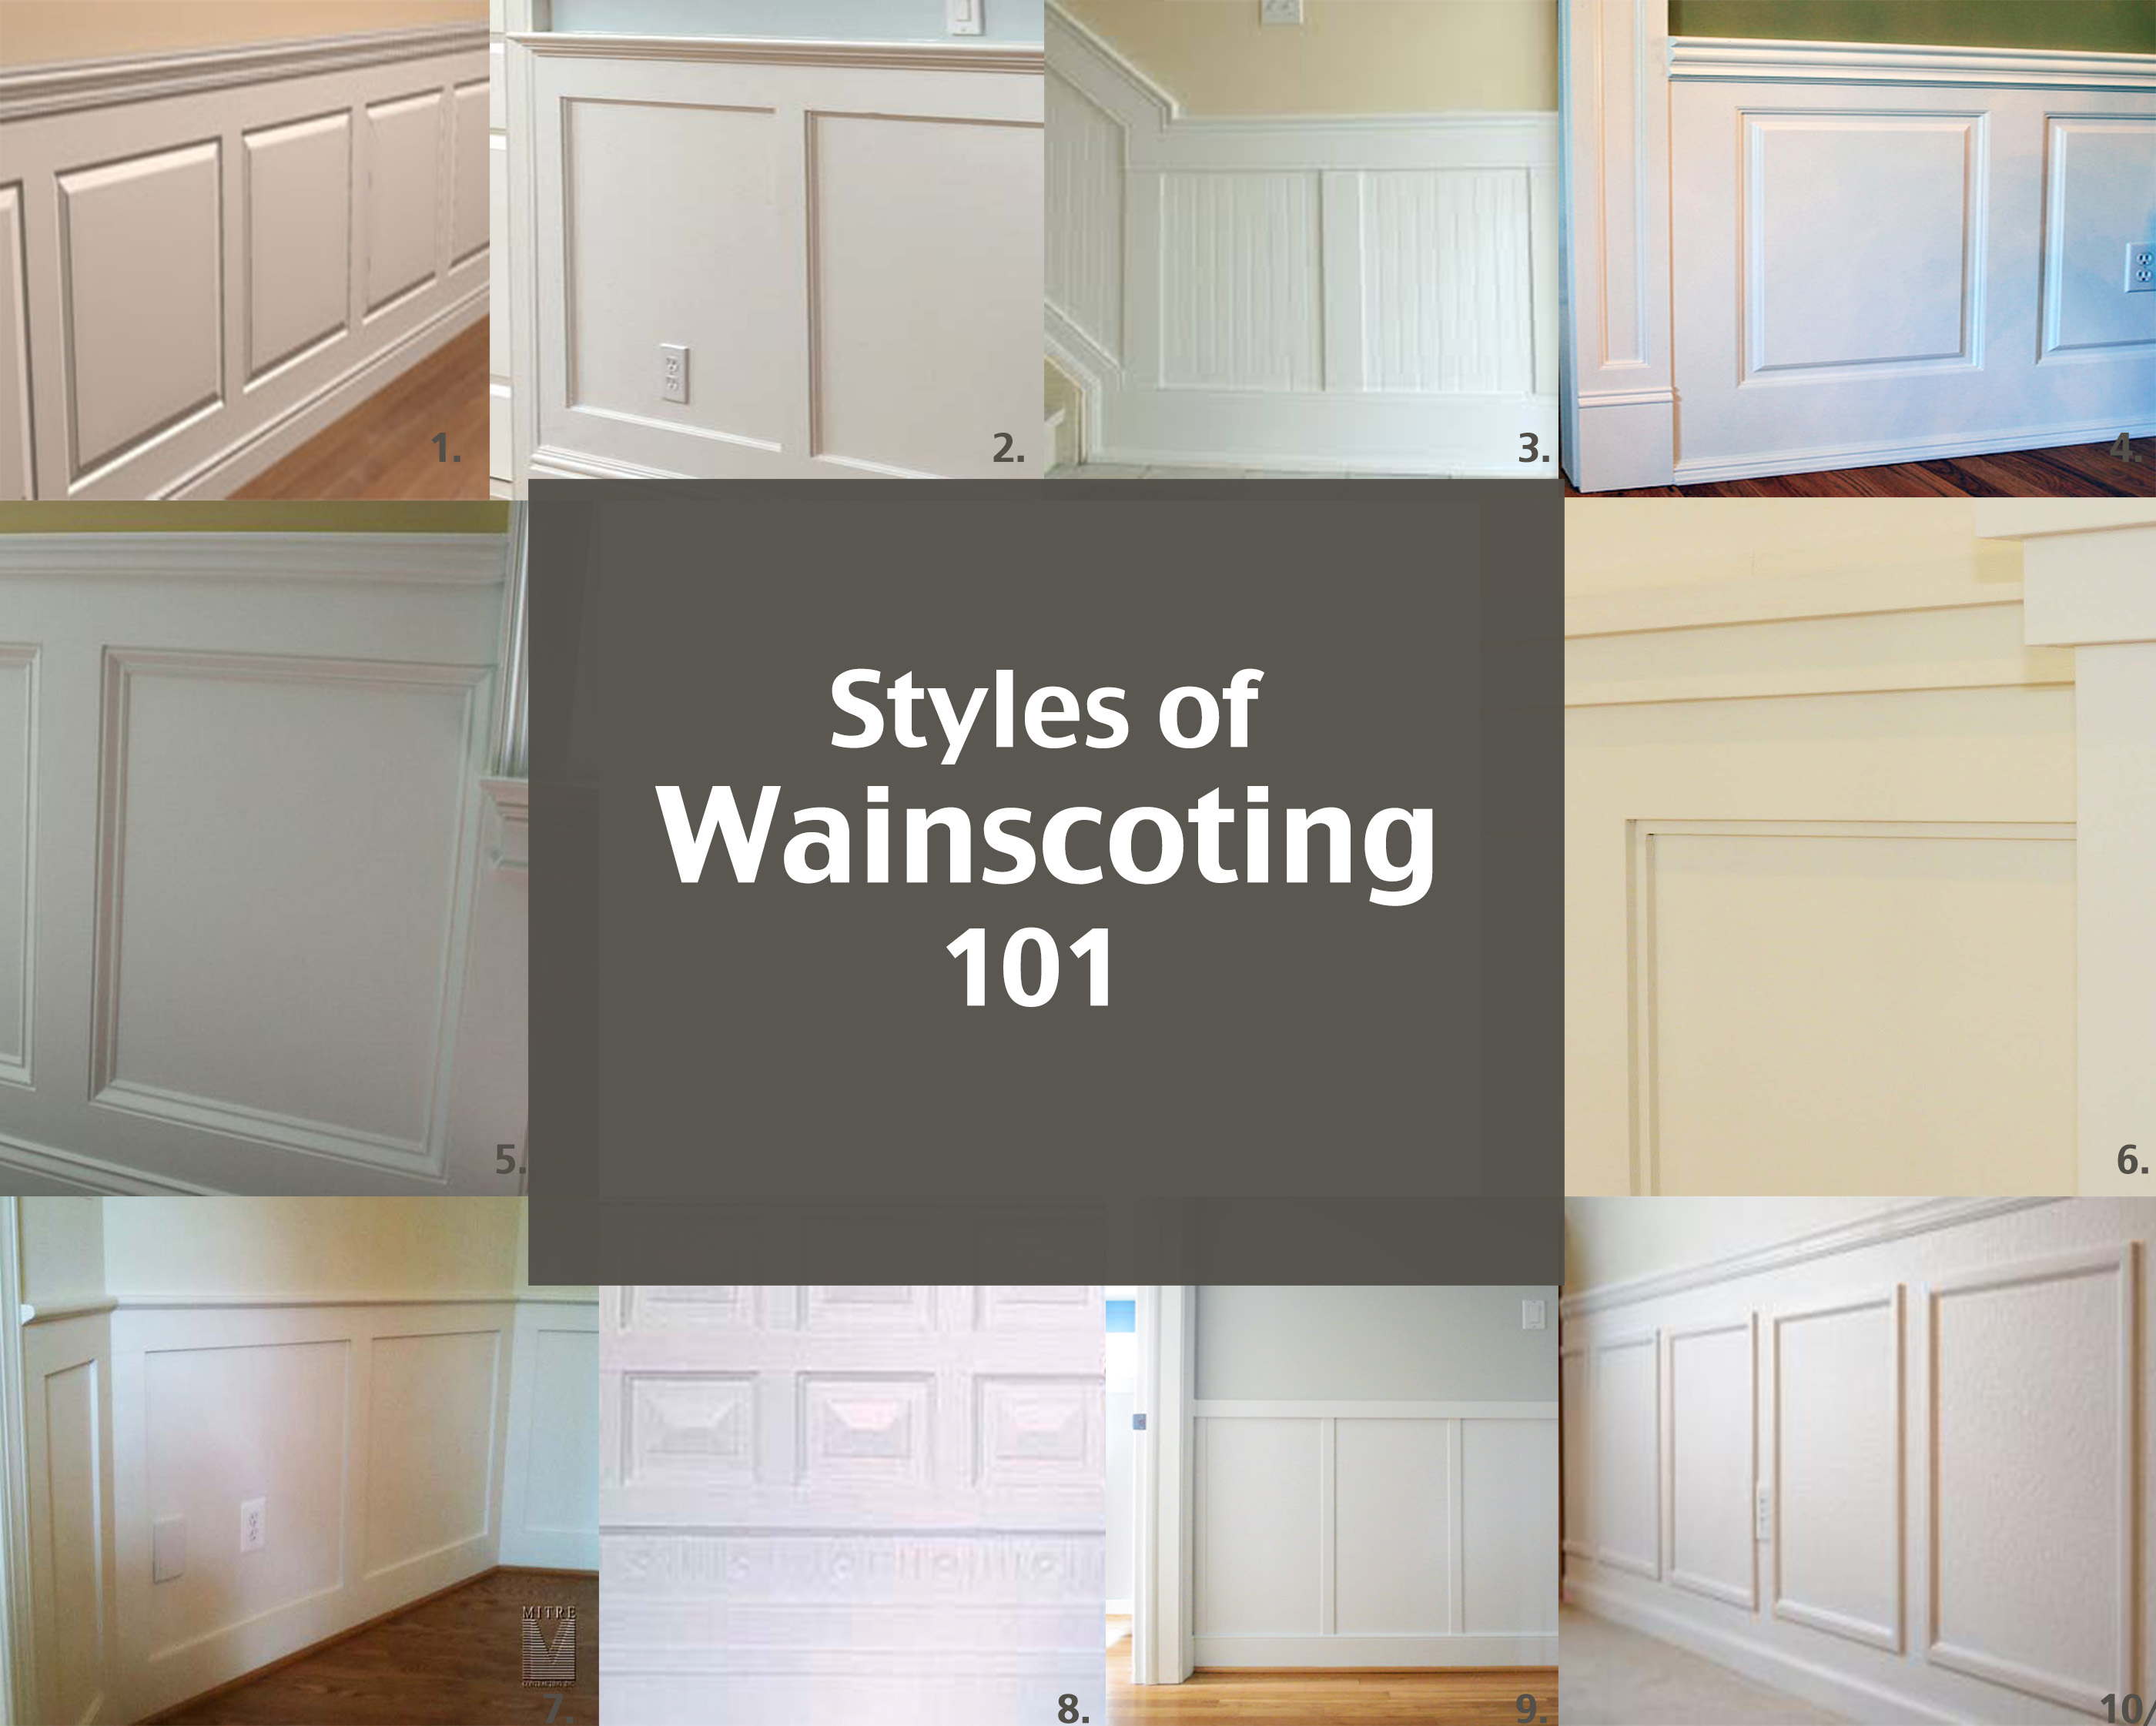 Styles of Wainscoting Elizabeth Bixler Designs : Styles of Wainscotting from elizabethbixler.com size 2800 x 2242 jpeg 451kB